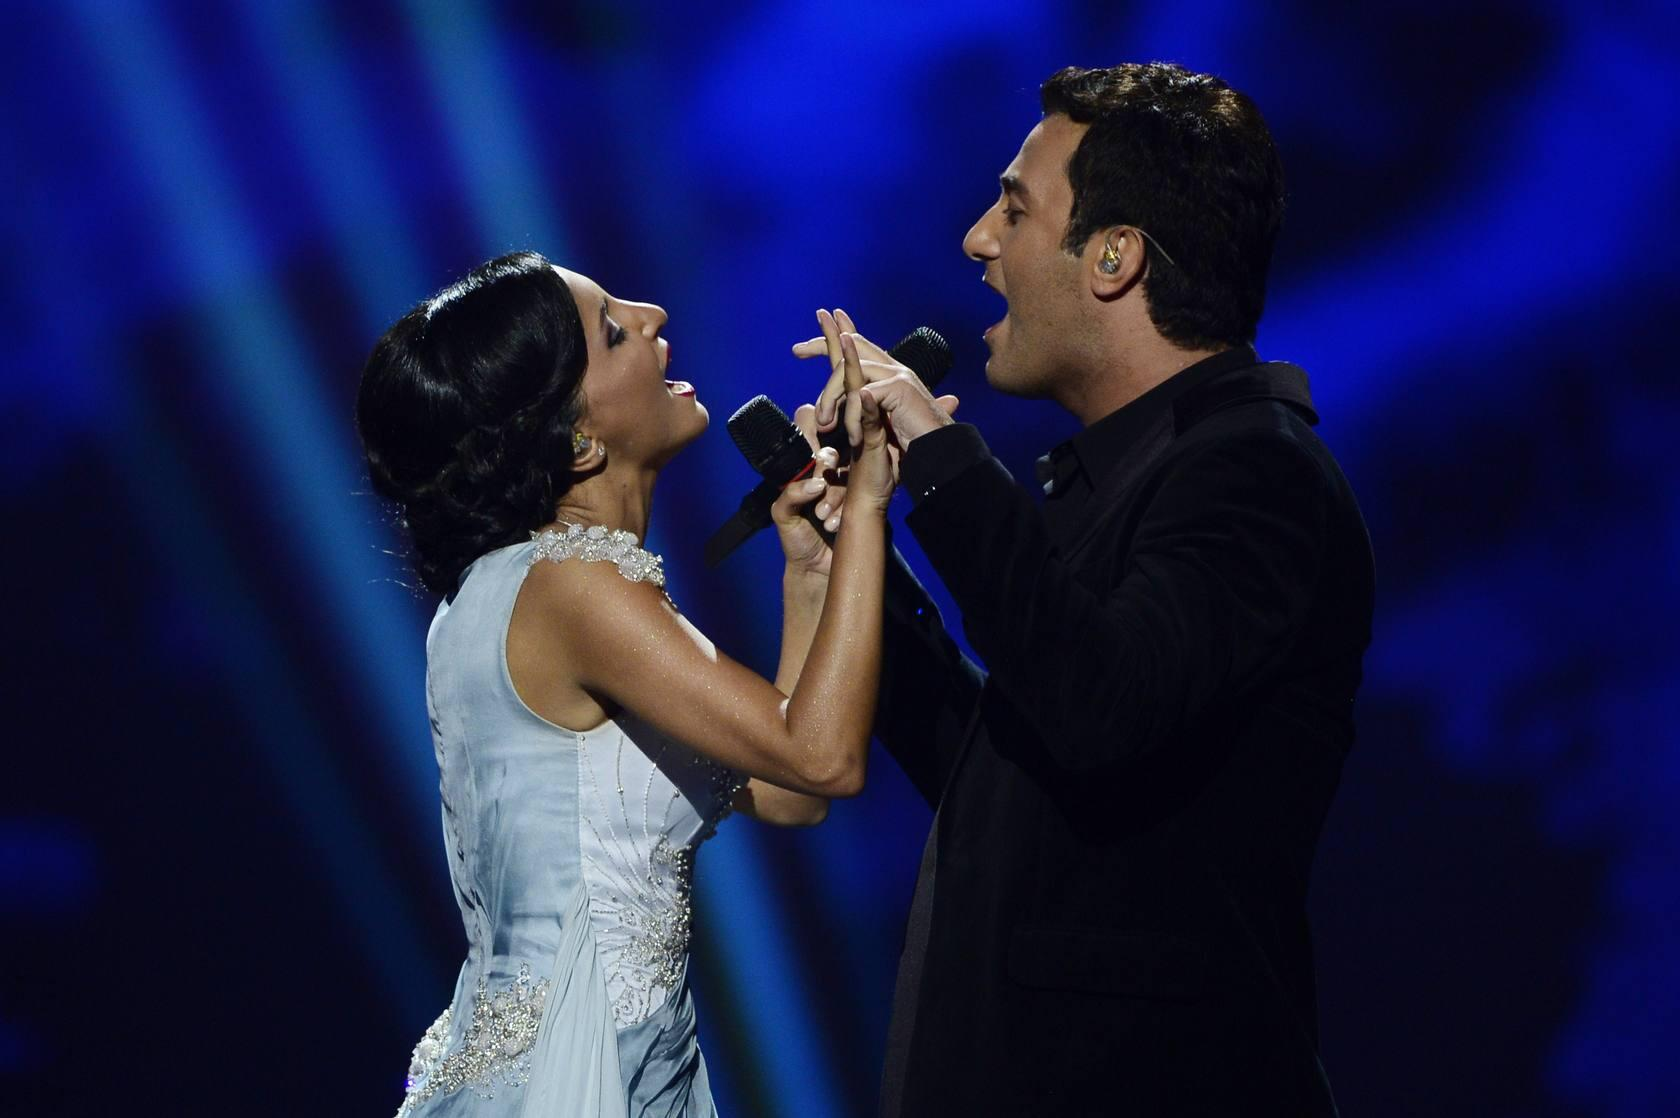 Festival de Eurovisi&oacute;n 2013